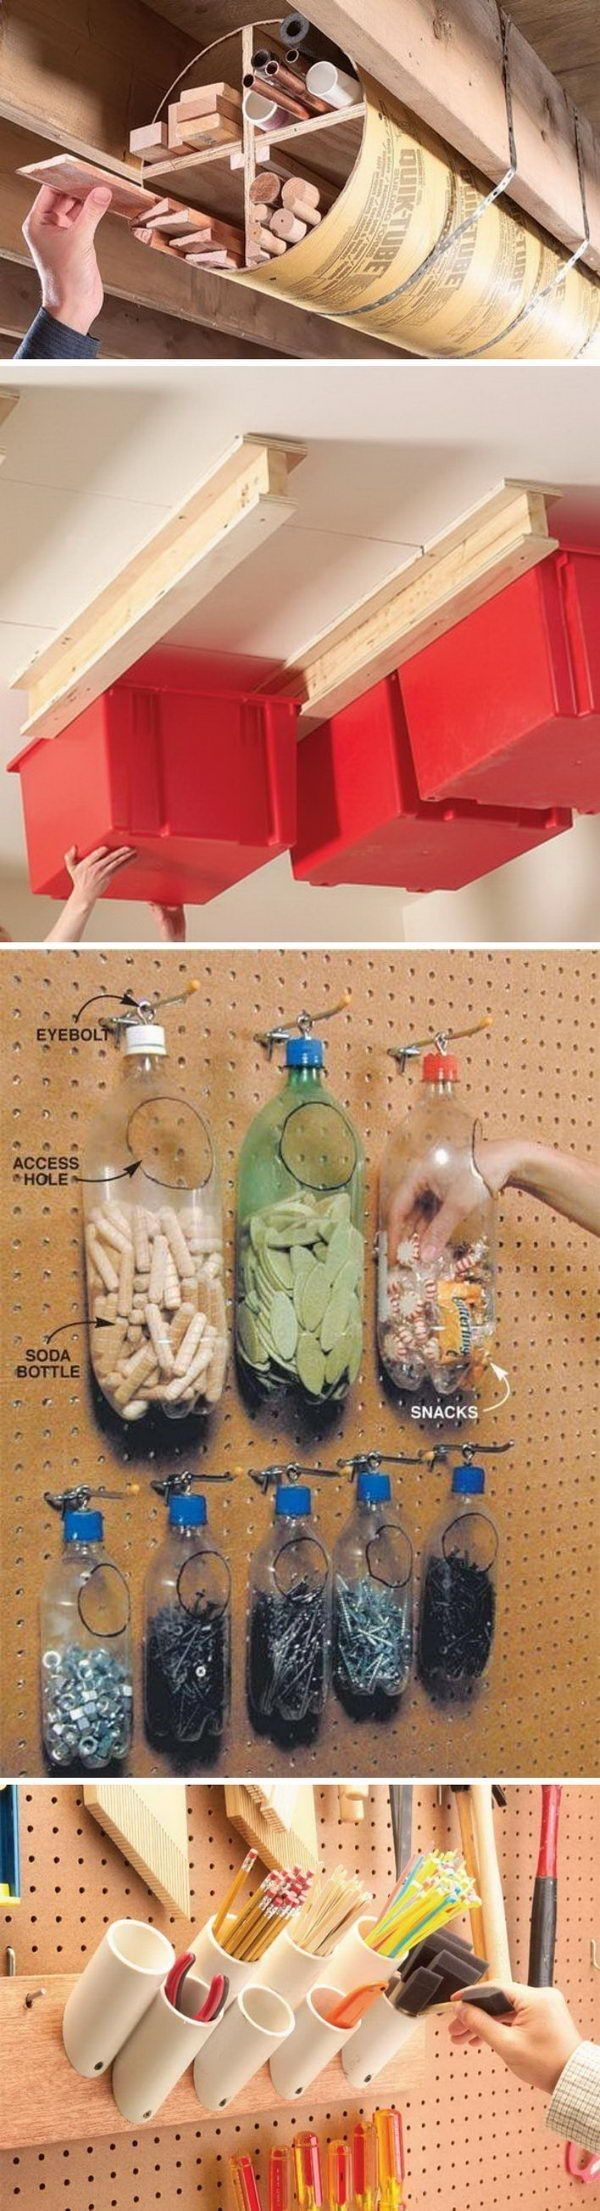 Shed Plans - Clever Garage Storage and Organization Ideas Now You Can Build ANY Shed In A Weekend Even If You've Zero Woodworking Experience!